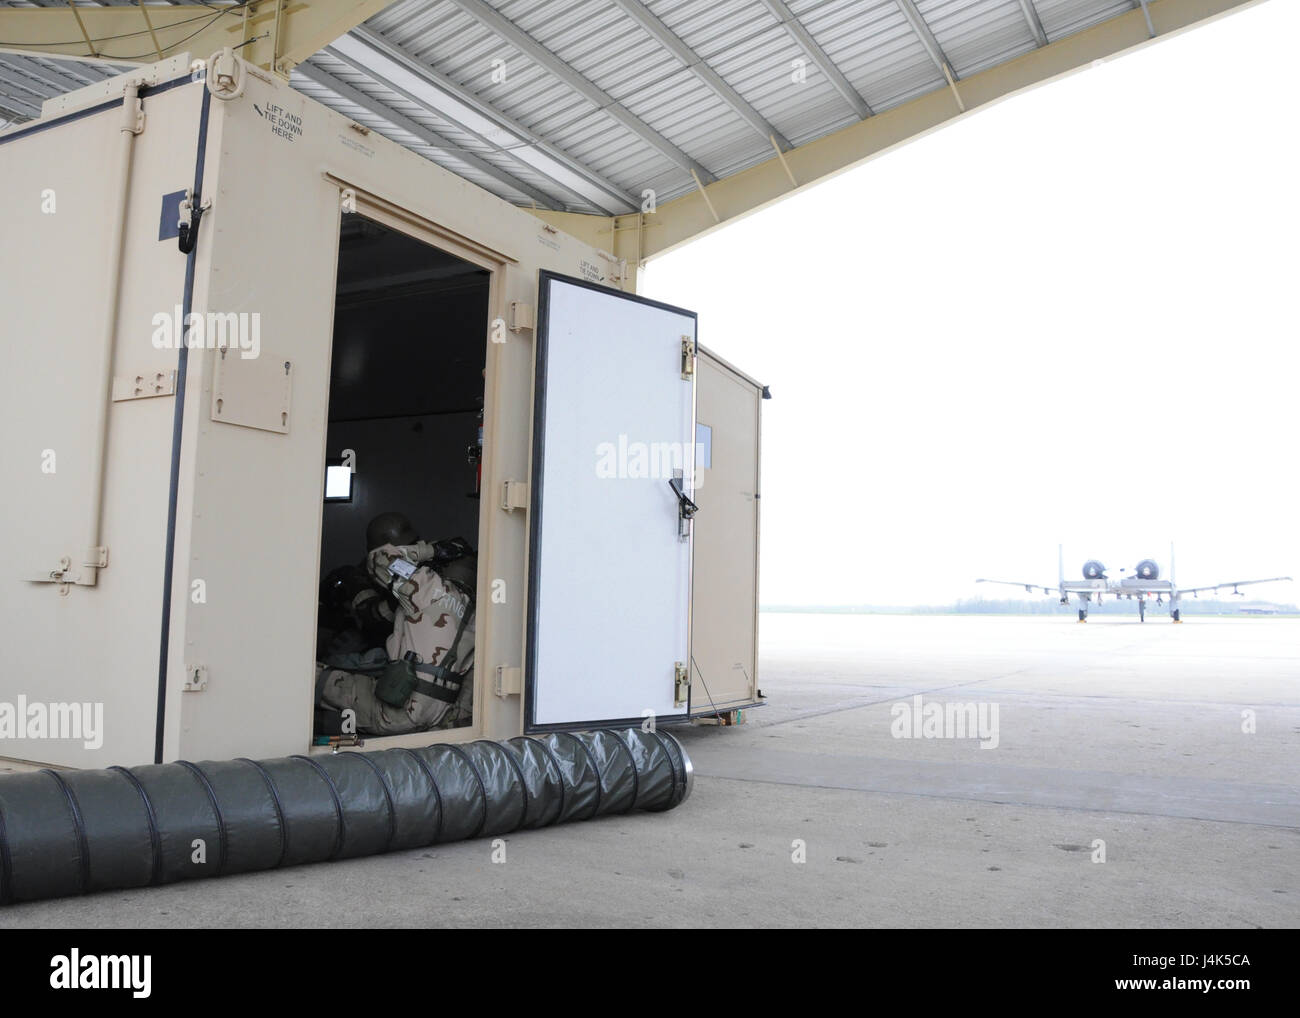 Airmen of the 442d Maintenance Squadron take cover in a